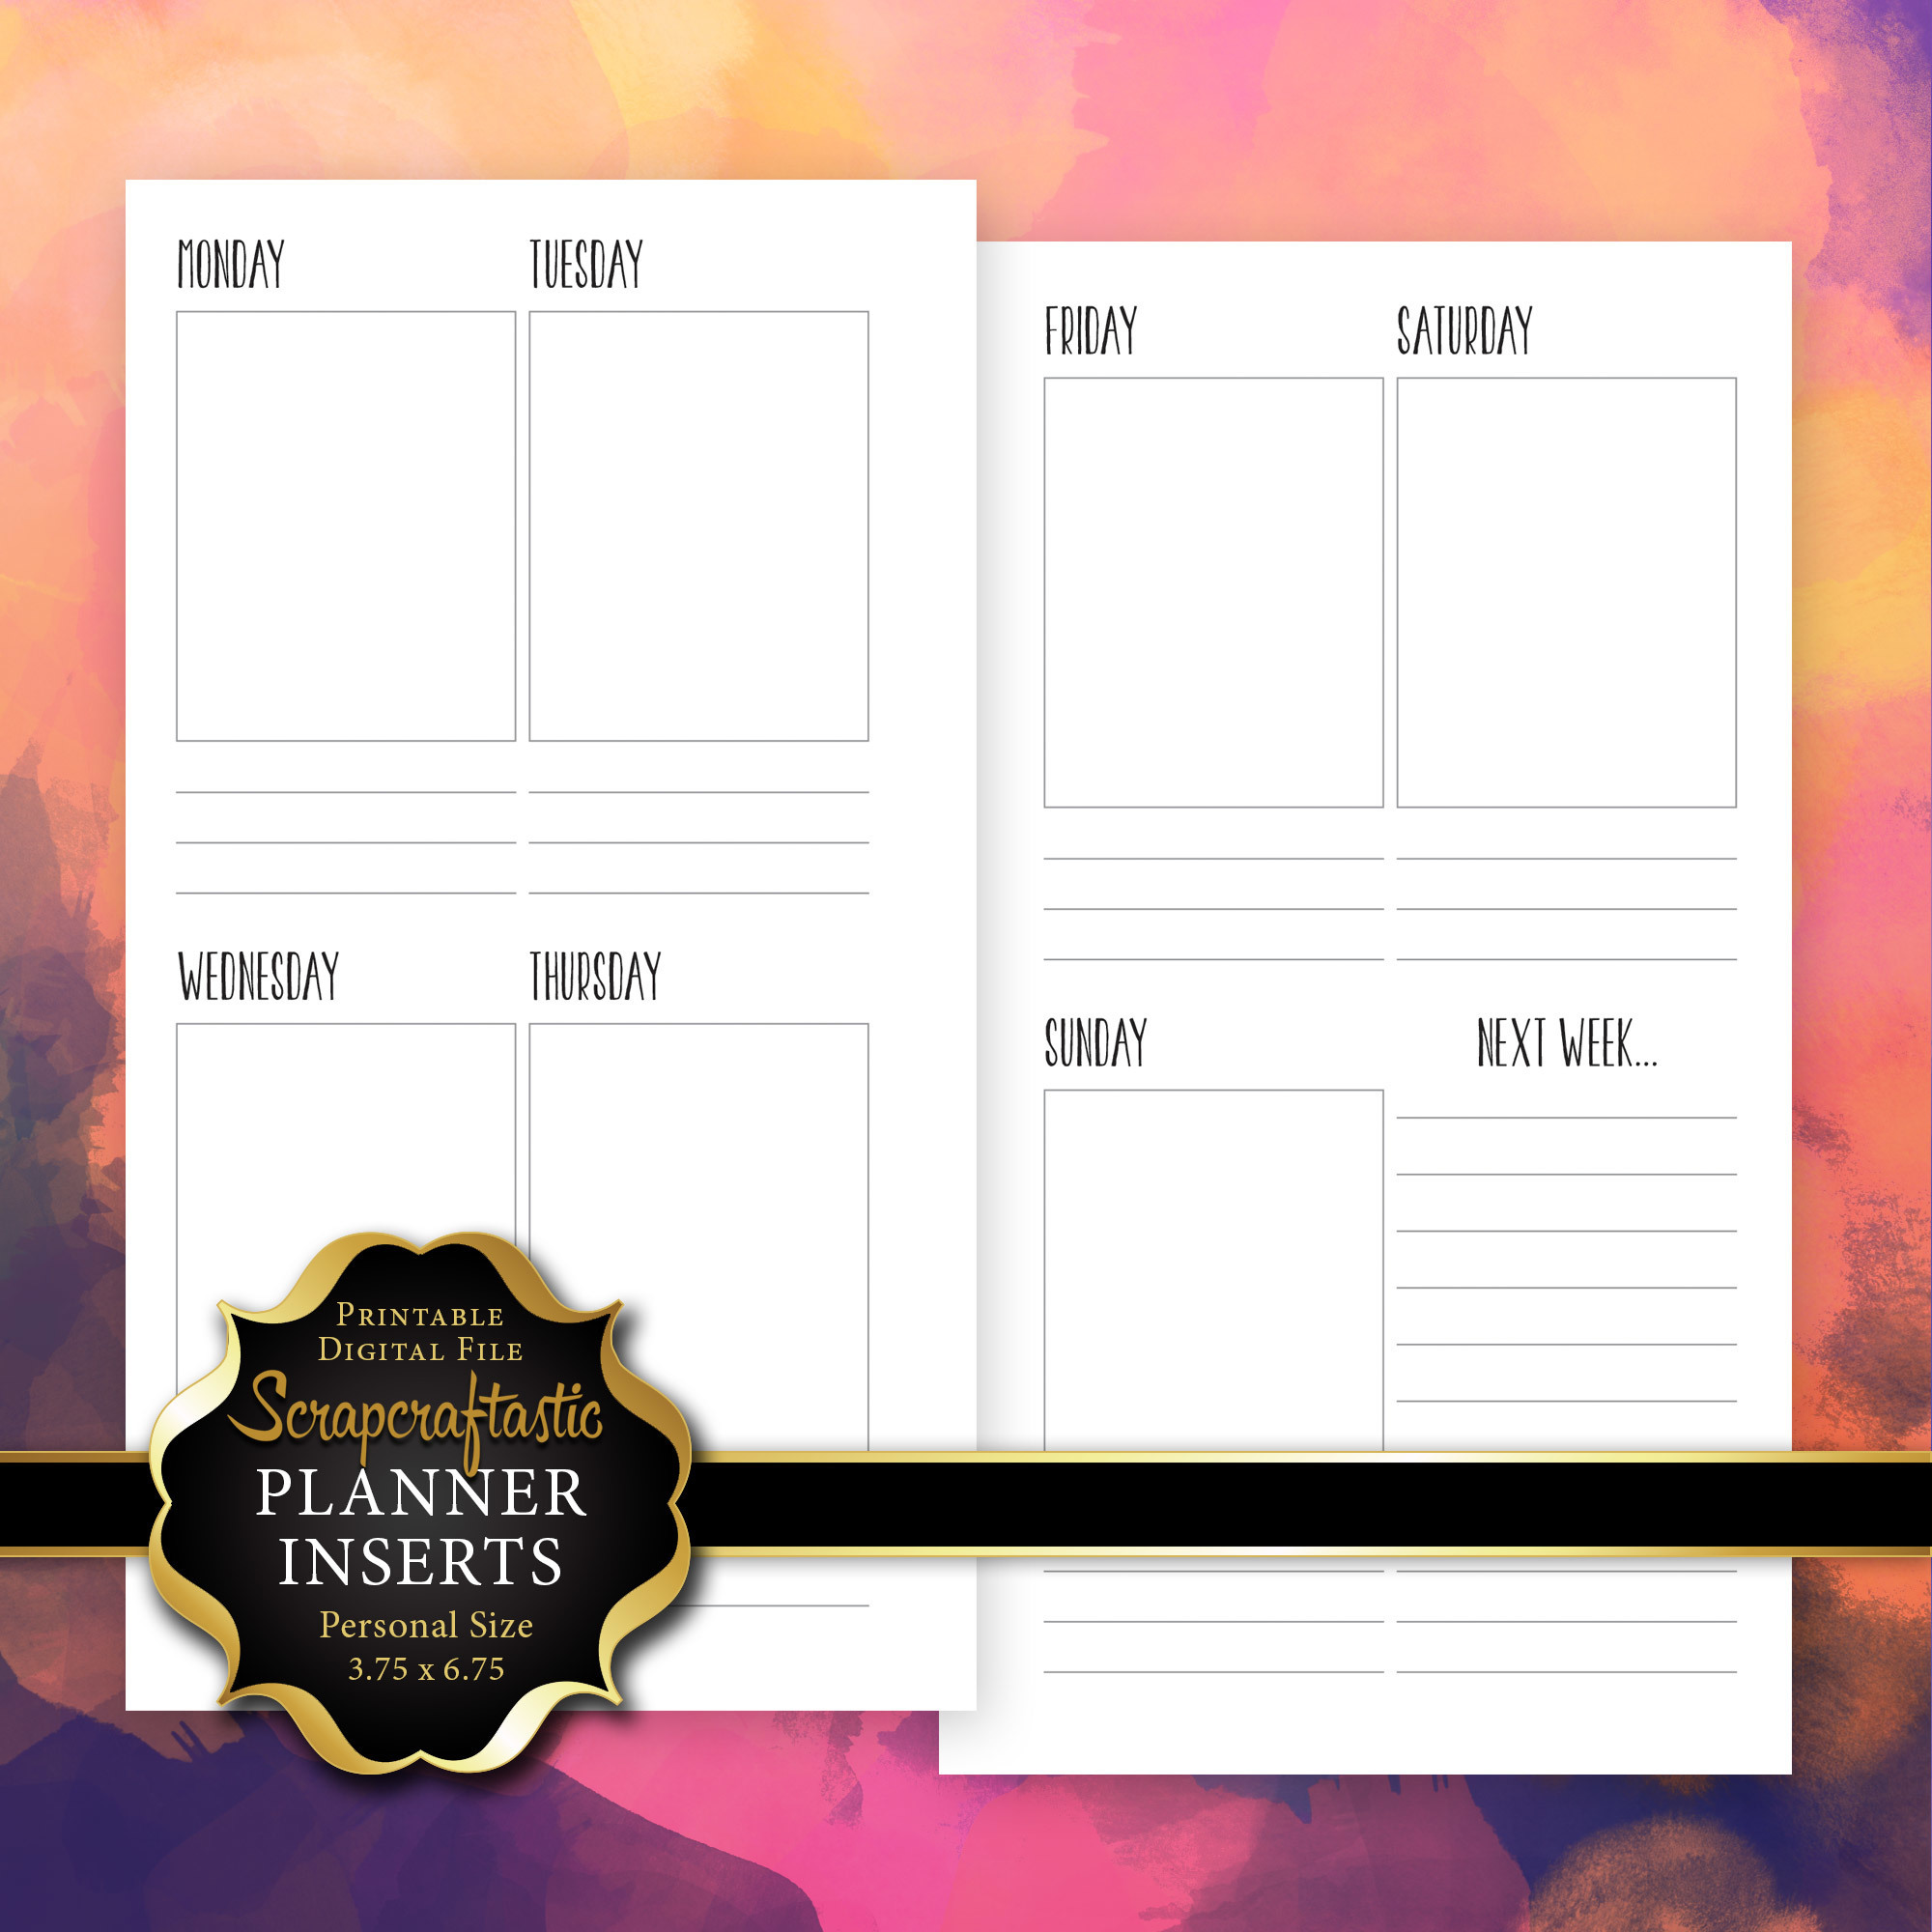 Planner Printable Insert Refill Undated WO2P Personal Size - Filofax Kikki K ColorCrush Erin Condren Size Full Boxes & Next Week 00234